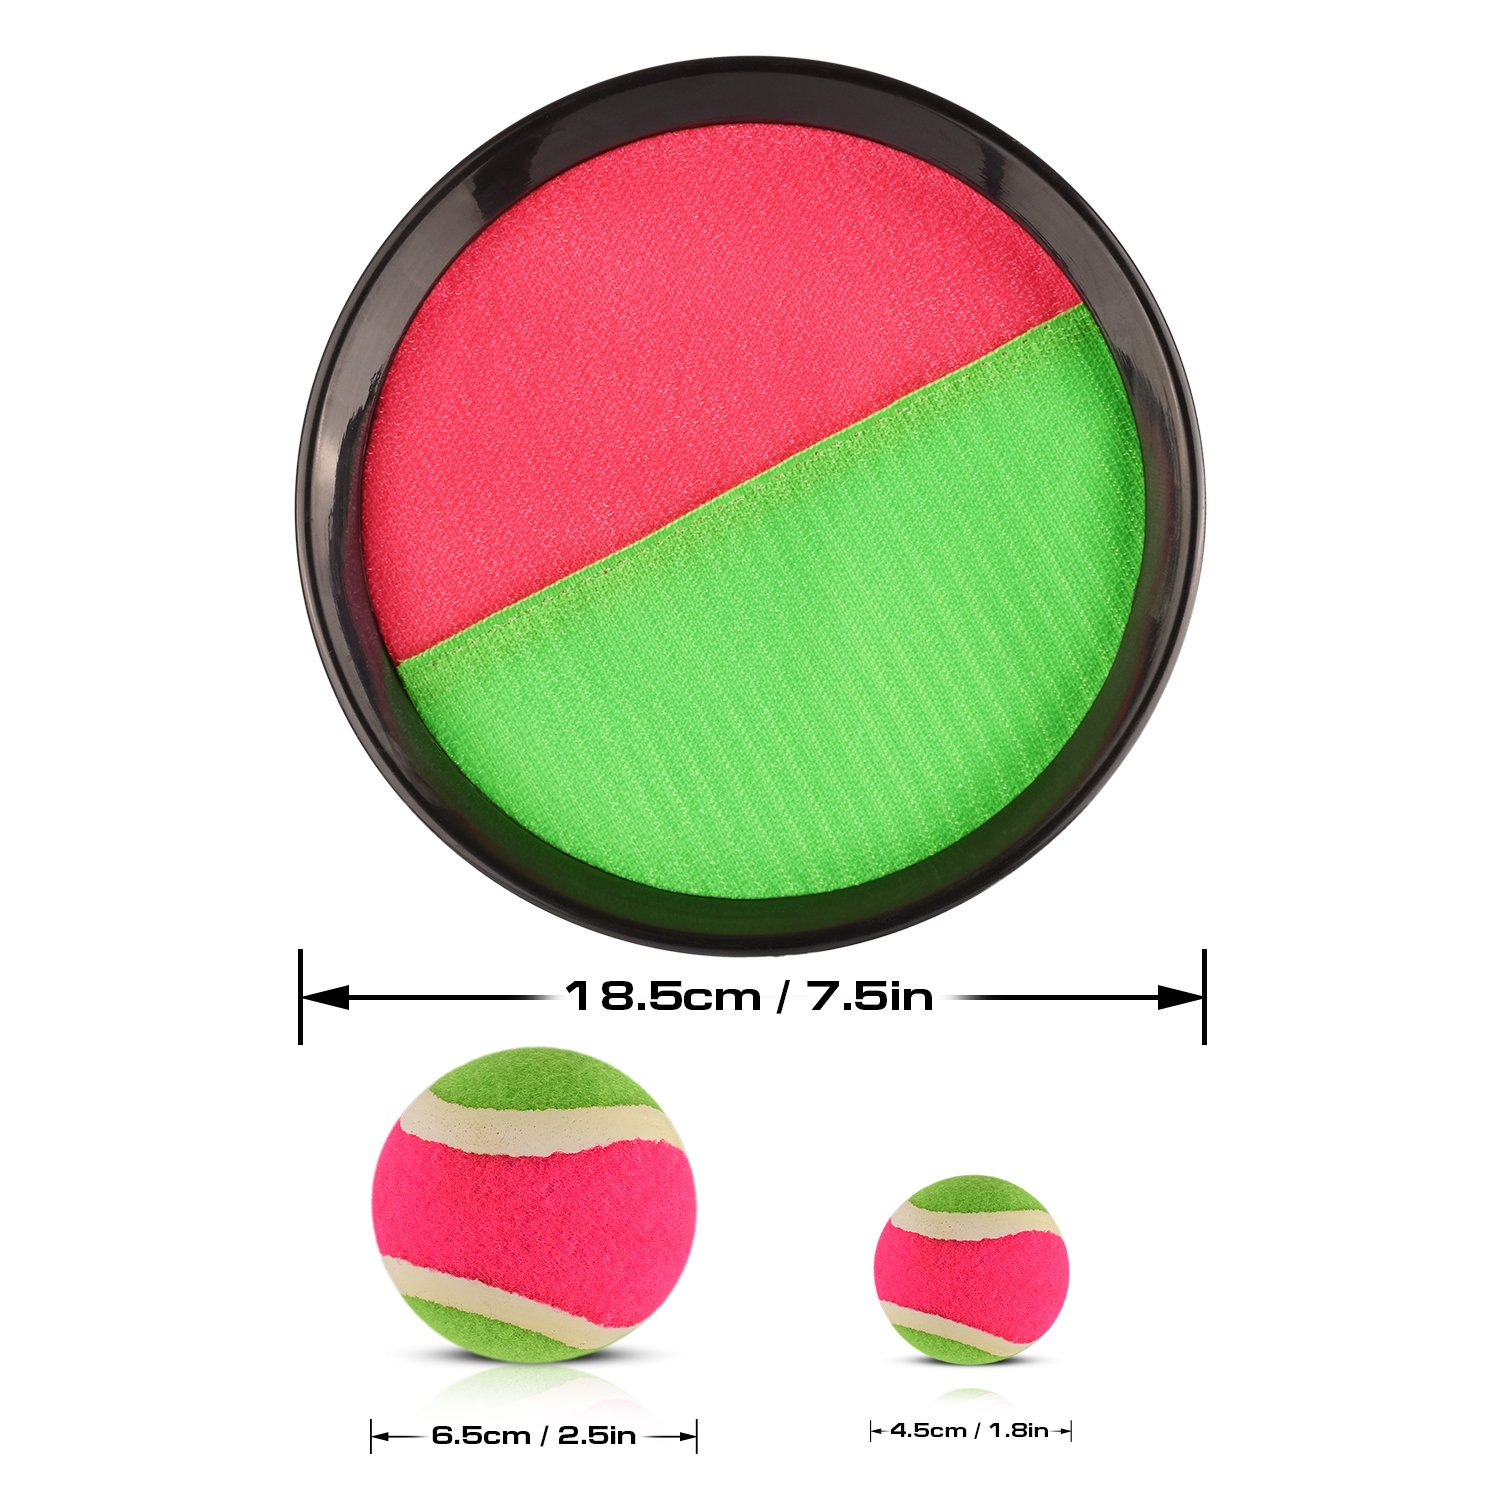 Abco Tech Paddle Toss and Catch Game Set - Self-Stick Disc Paddles and Toss Ball Sport Game - Equally Suitable Game for Kids by Abco Tech (Image #4)